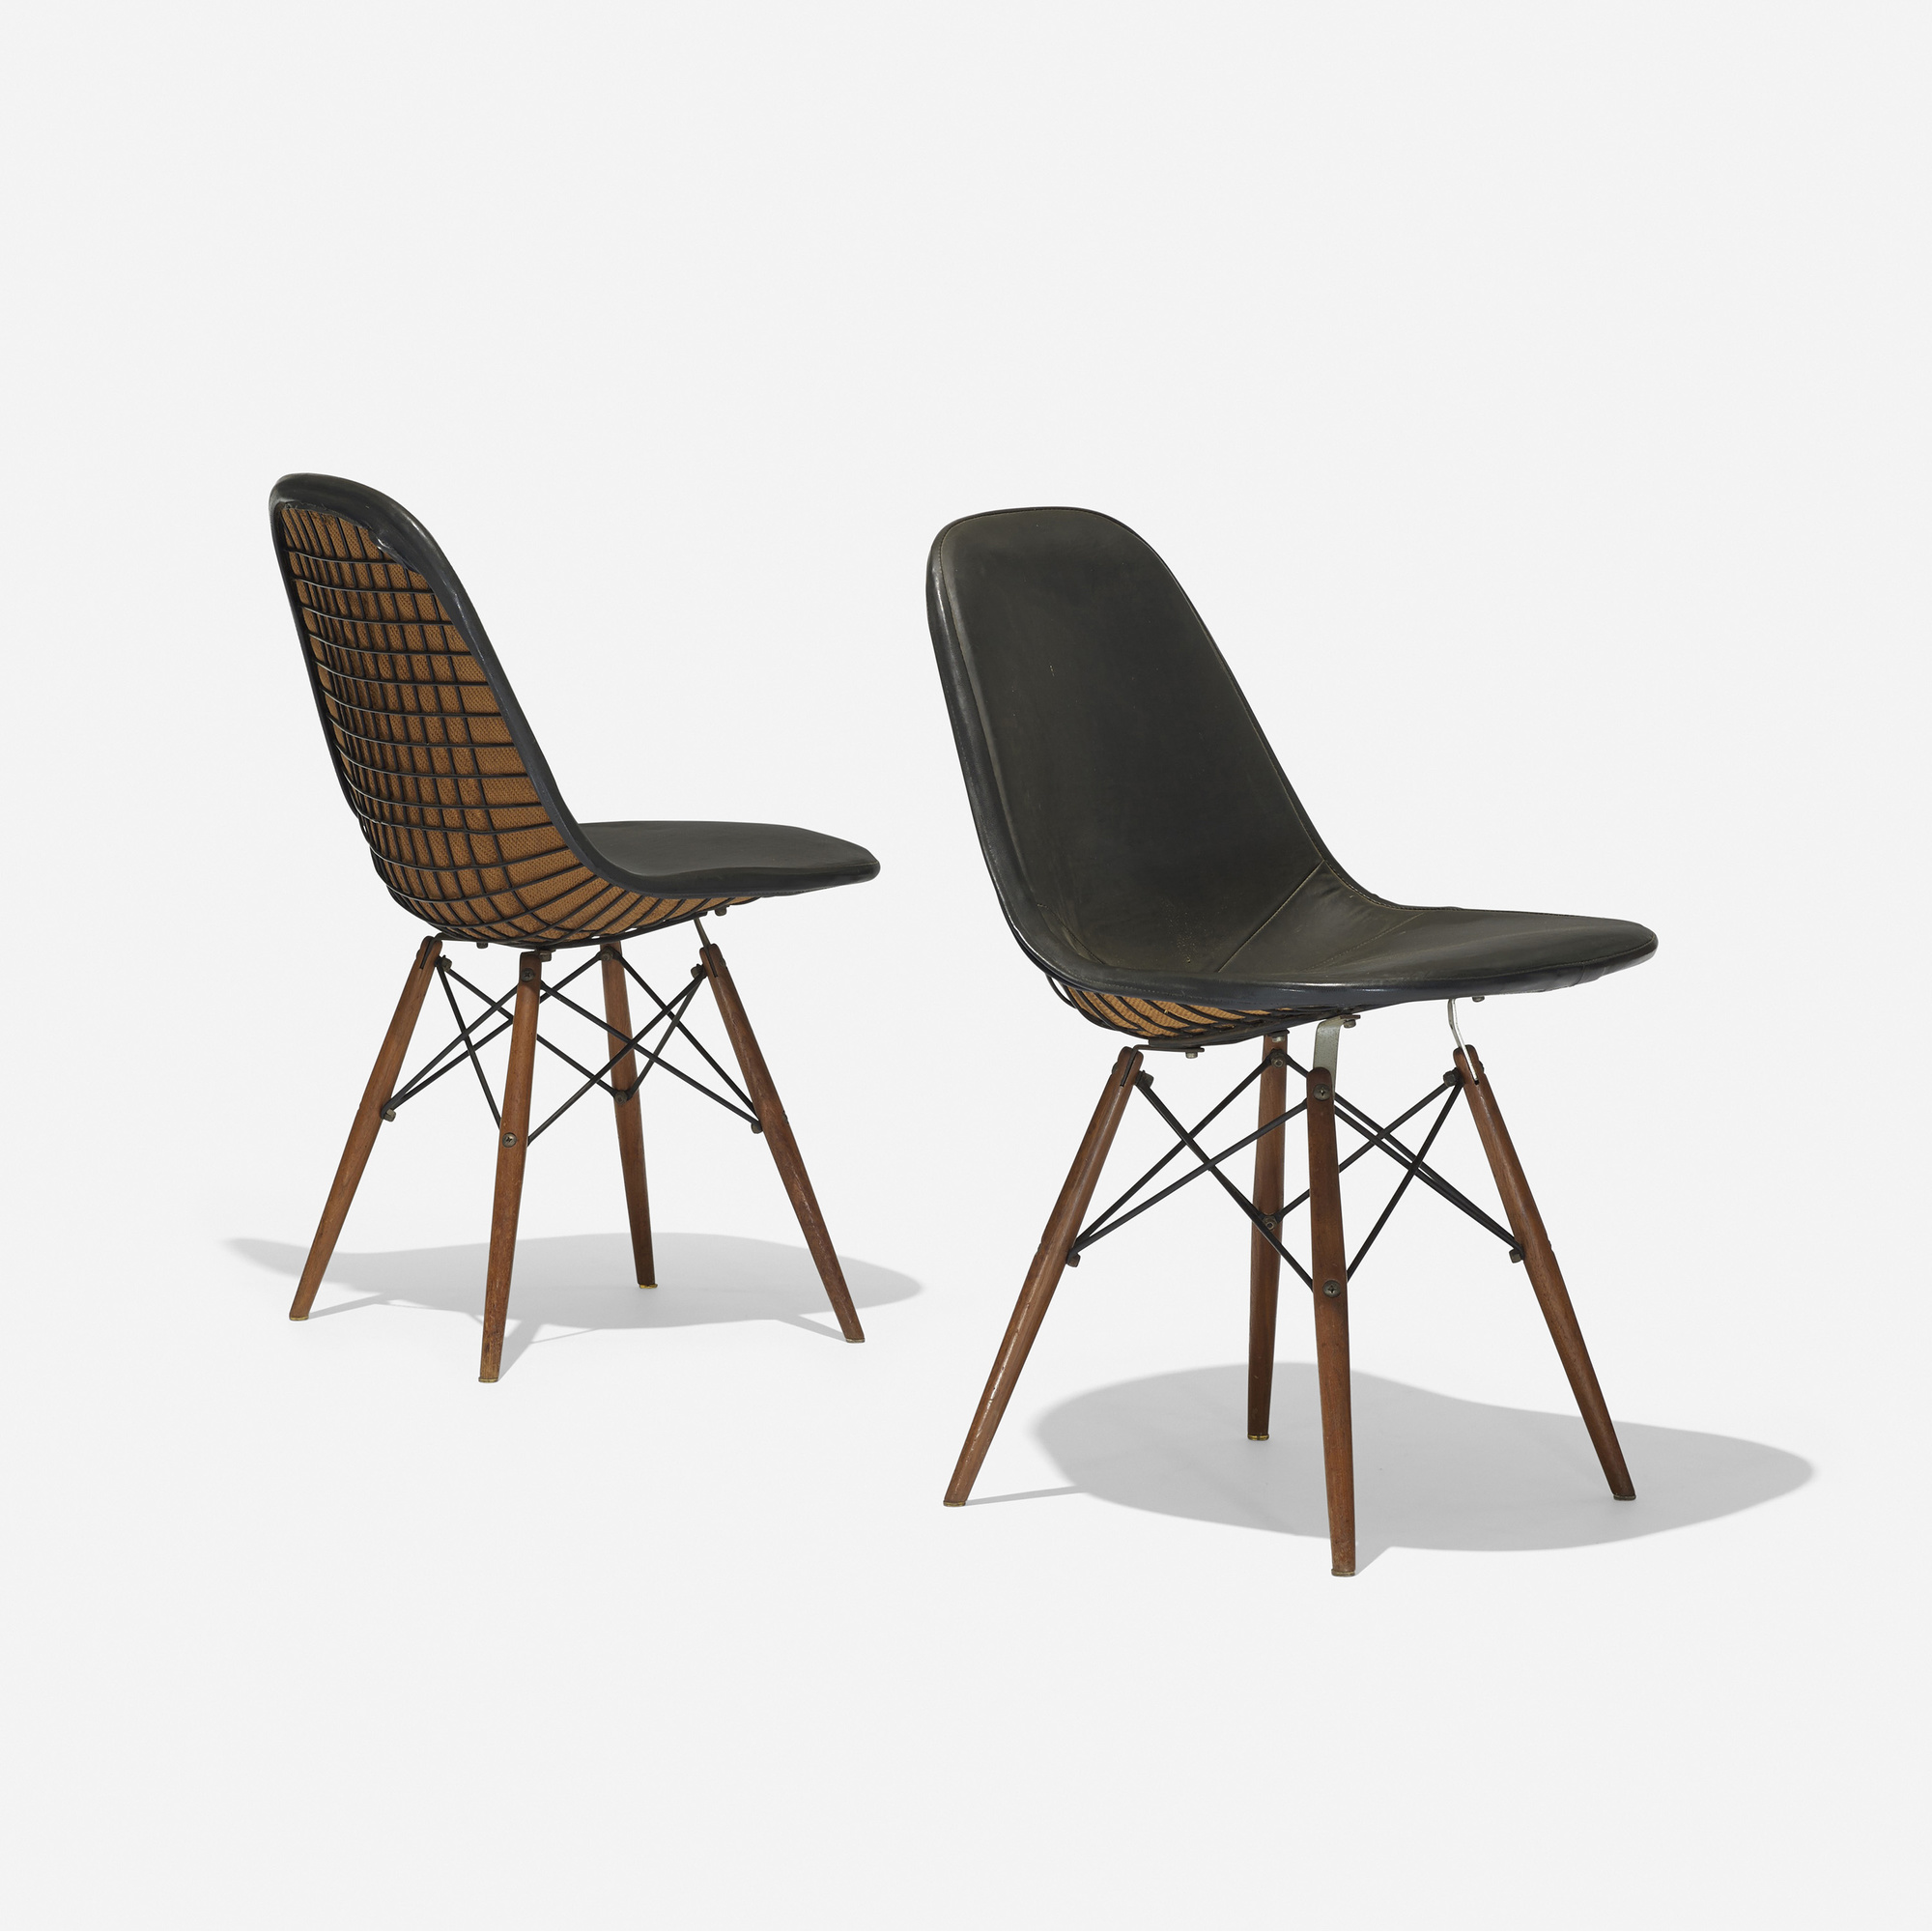 218 charles and ray eames dkw 1s pair. Black Bedroom Furniture Sets. Home Design Ideas